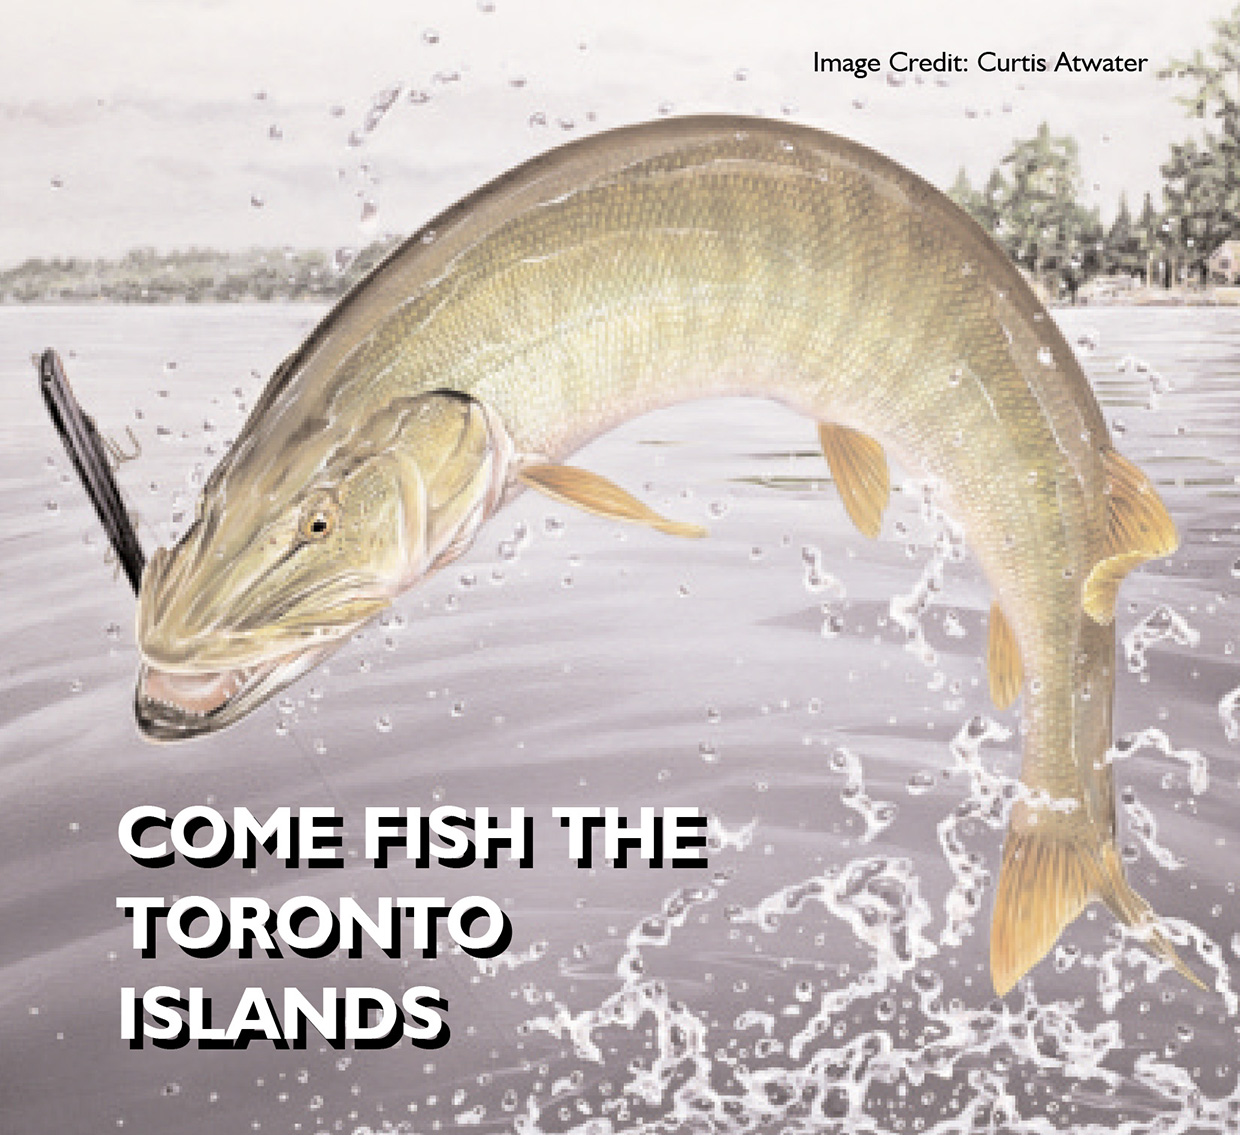 cover of Fishing Toronto Islands brochure